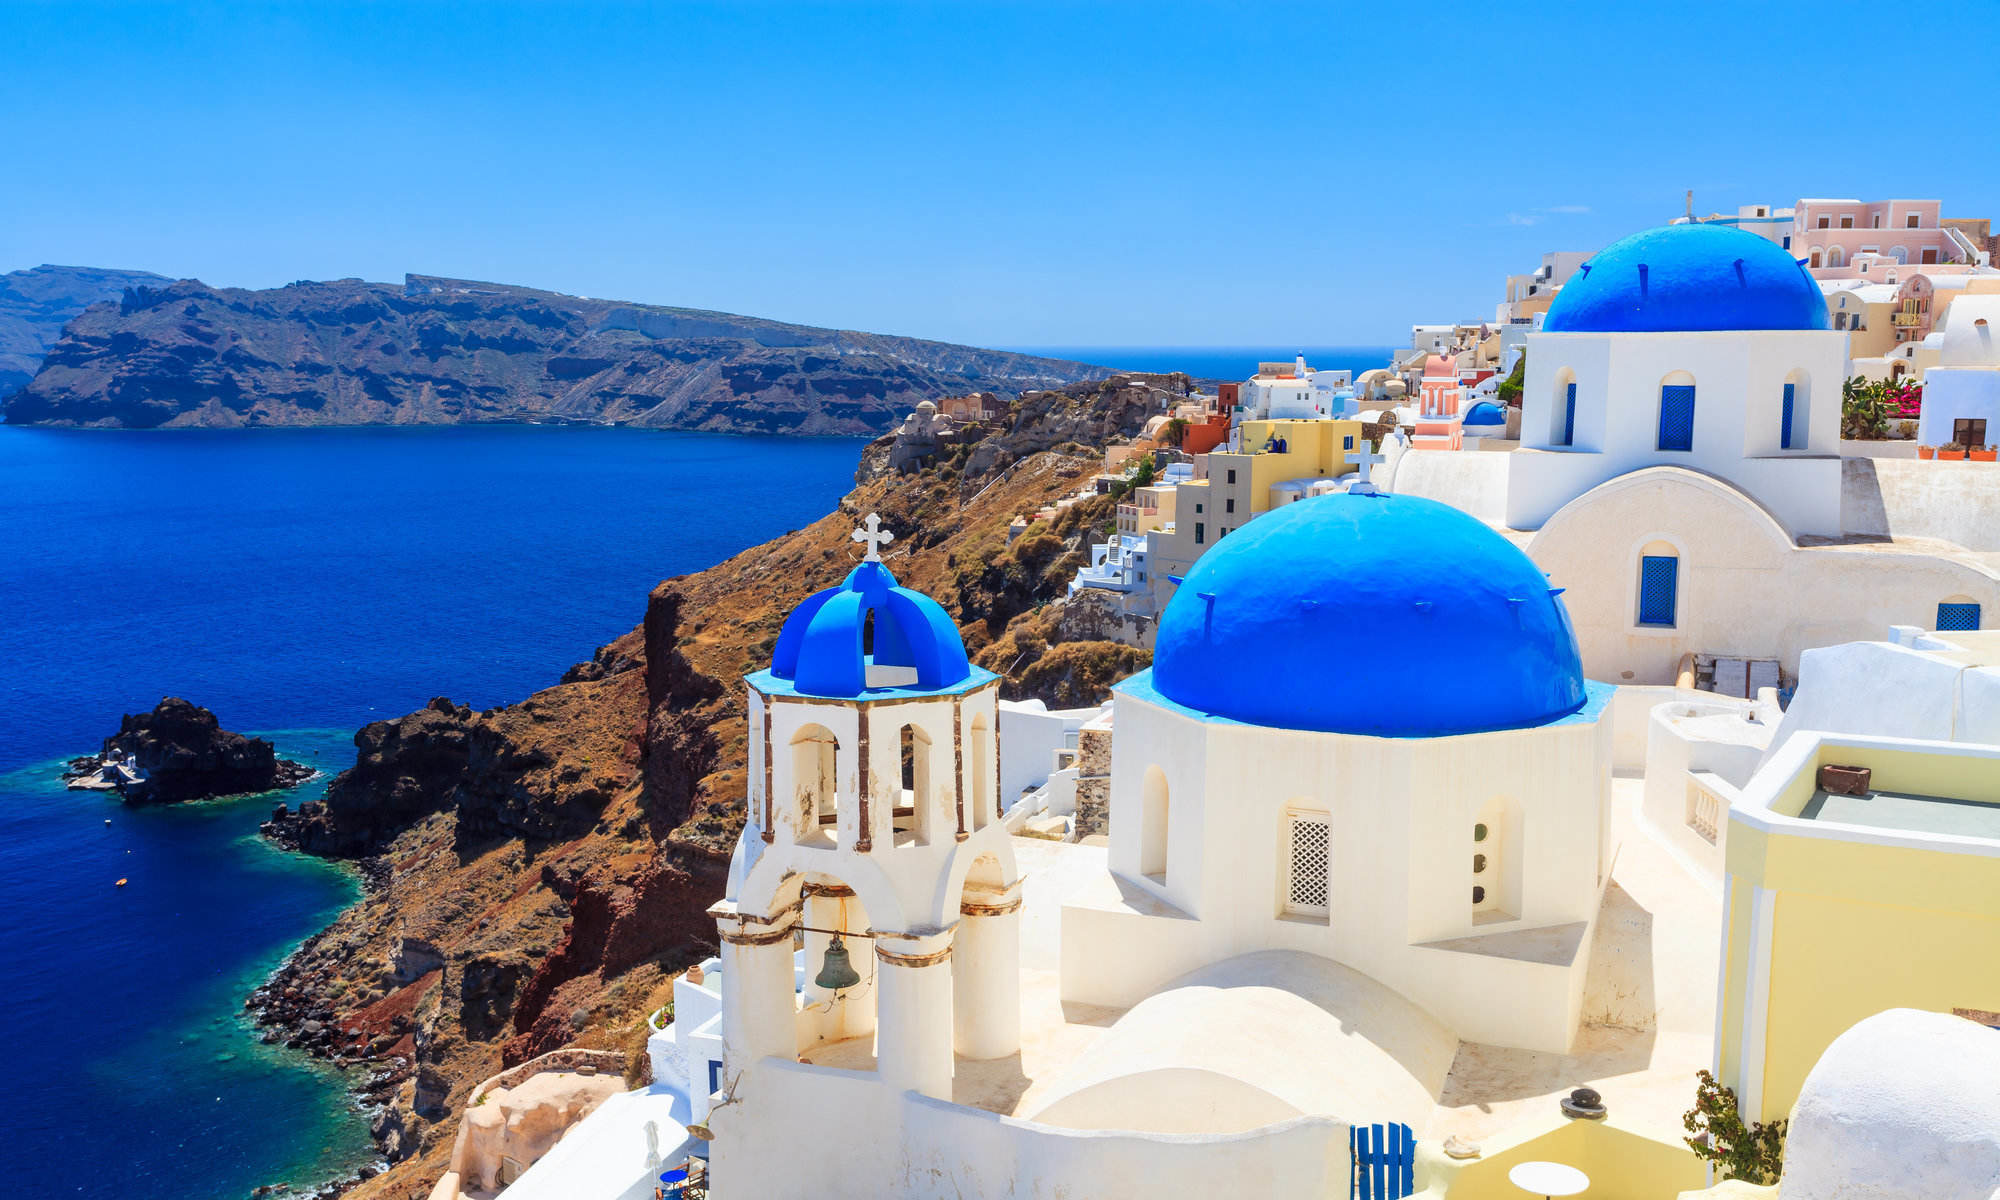 Blue-domed churches on the Caldera at Oia on the Greek Island of Santorini.